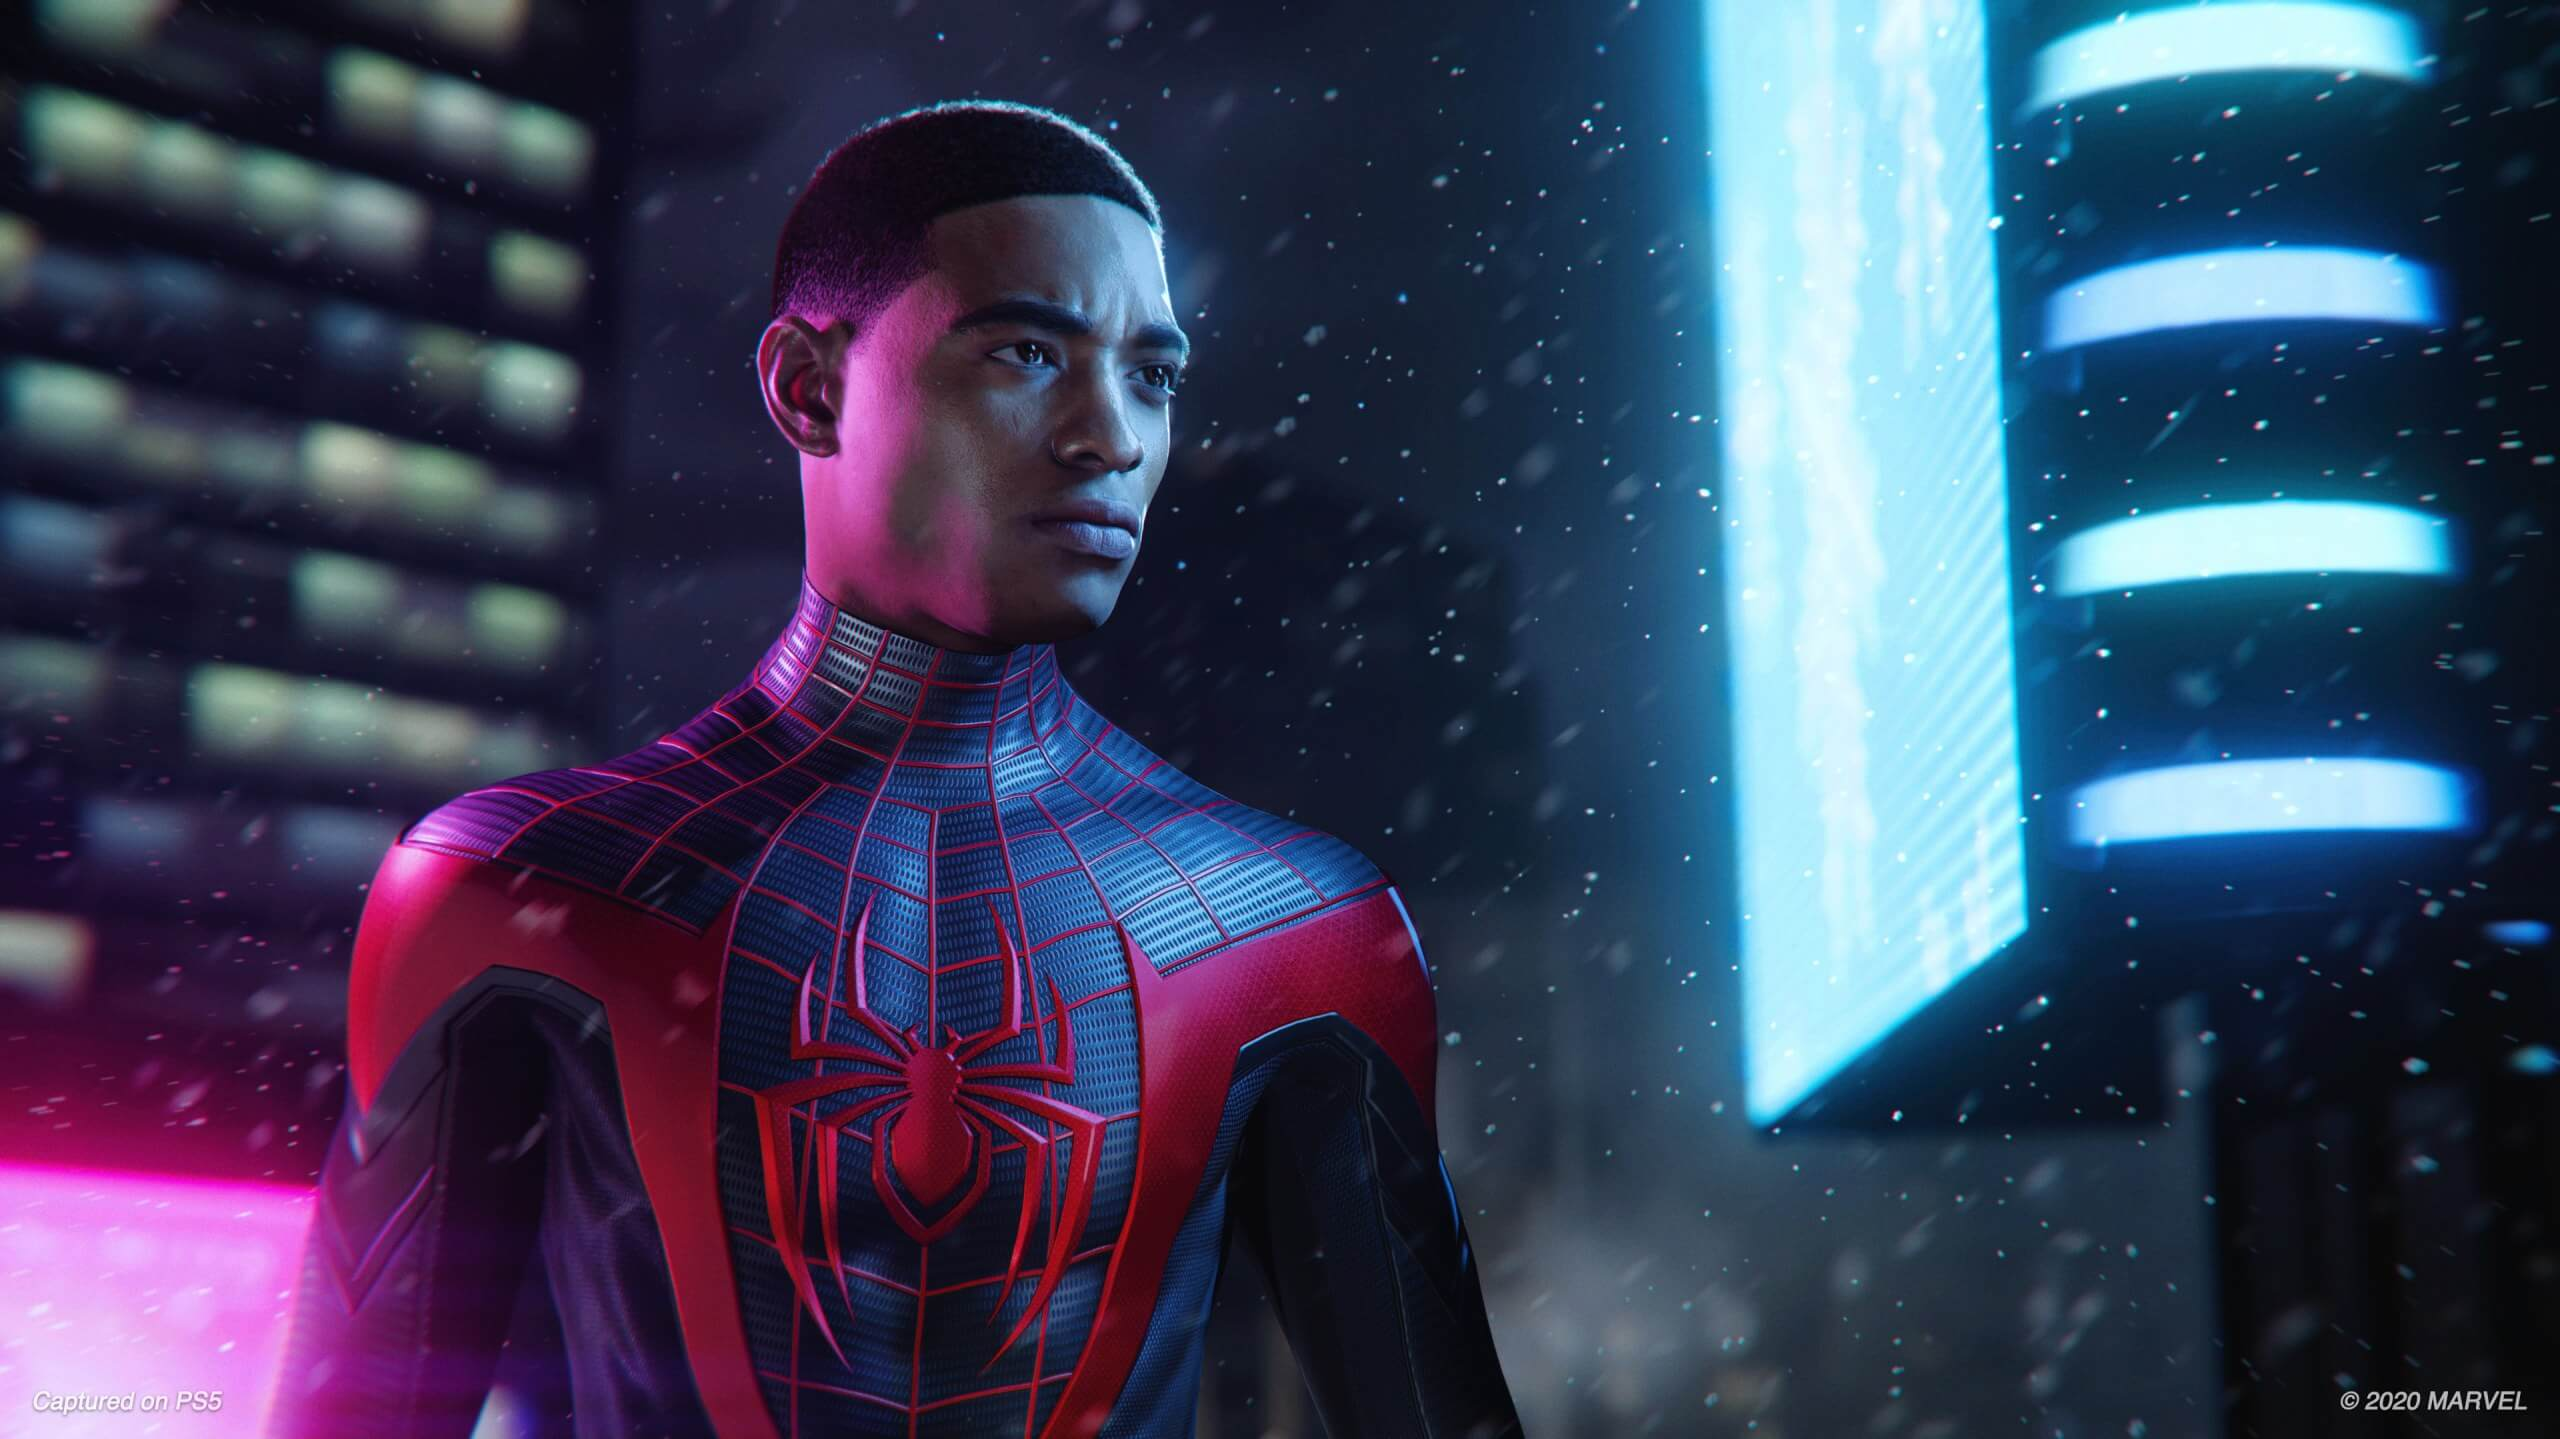 Spider-Man: Miles Morales is a standalone game, not an expansion pack